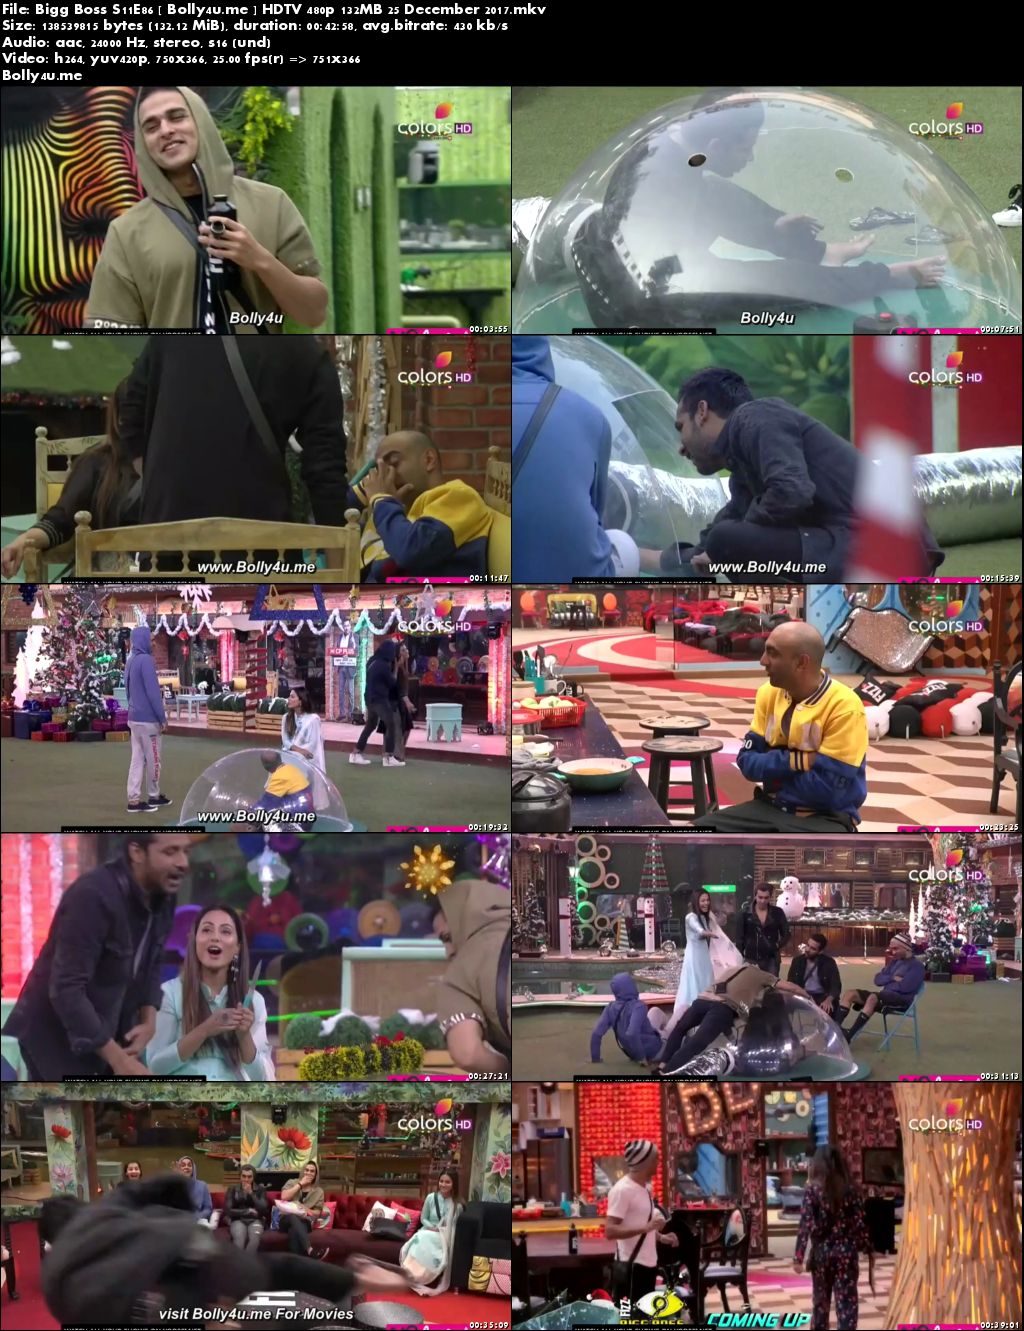 Bigg Boss S11E86 HDTV 480p 130MB 25 Dec 2017 Download